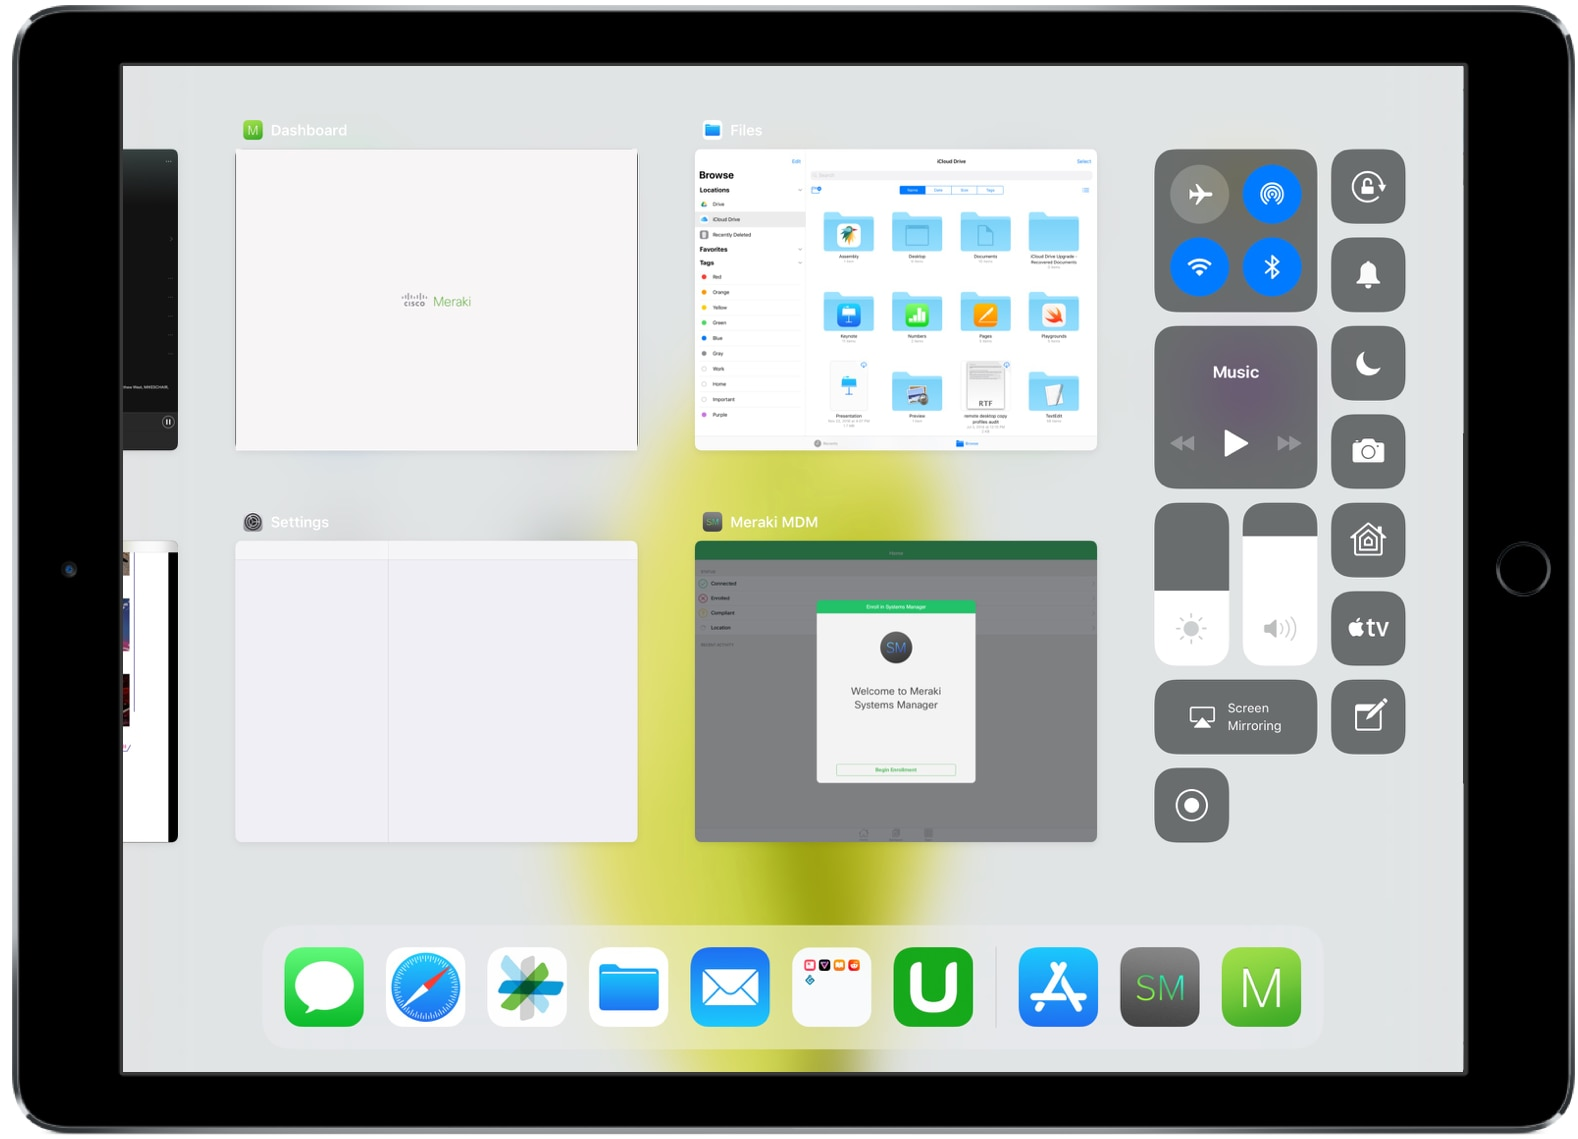 Dock and App Switcher